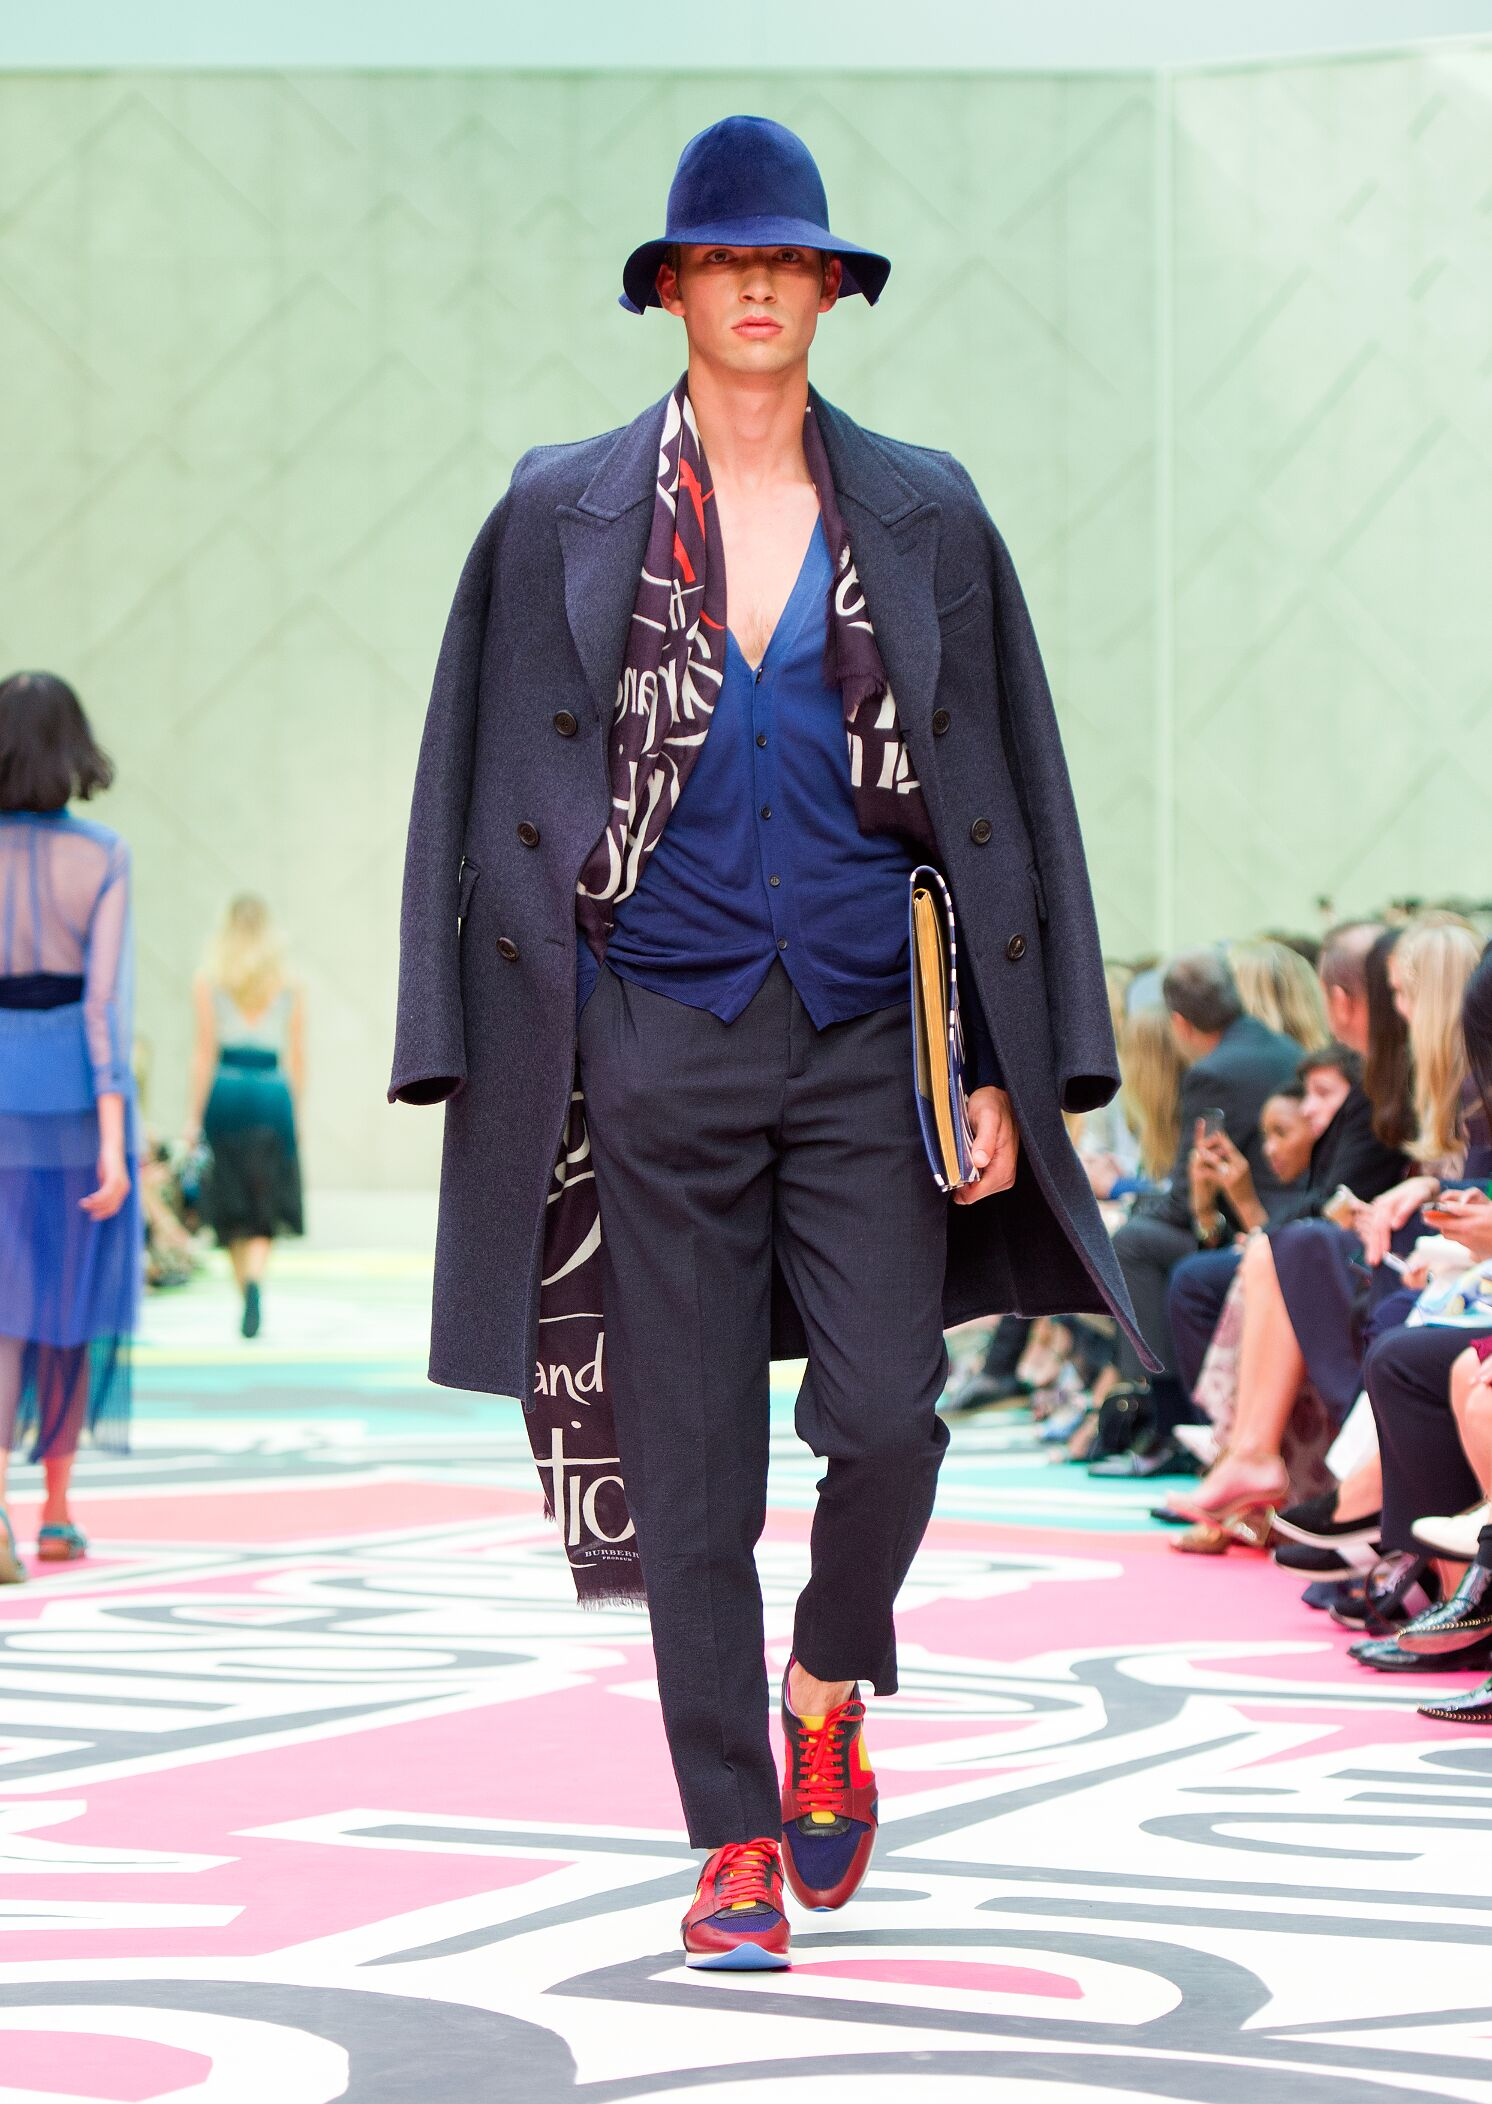 SS 2015 Burberry Prorsum Fashion Show